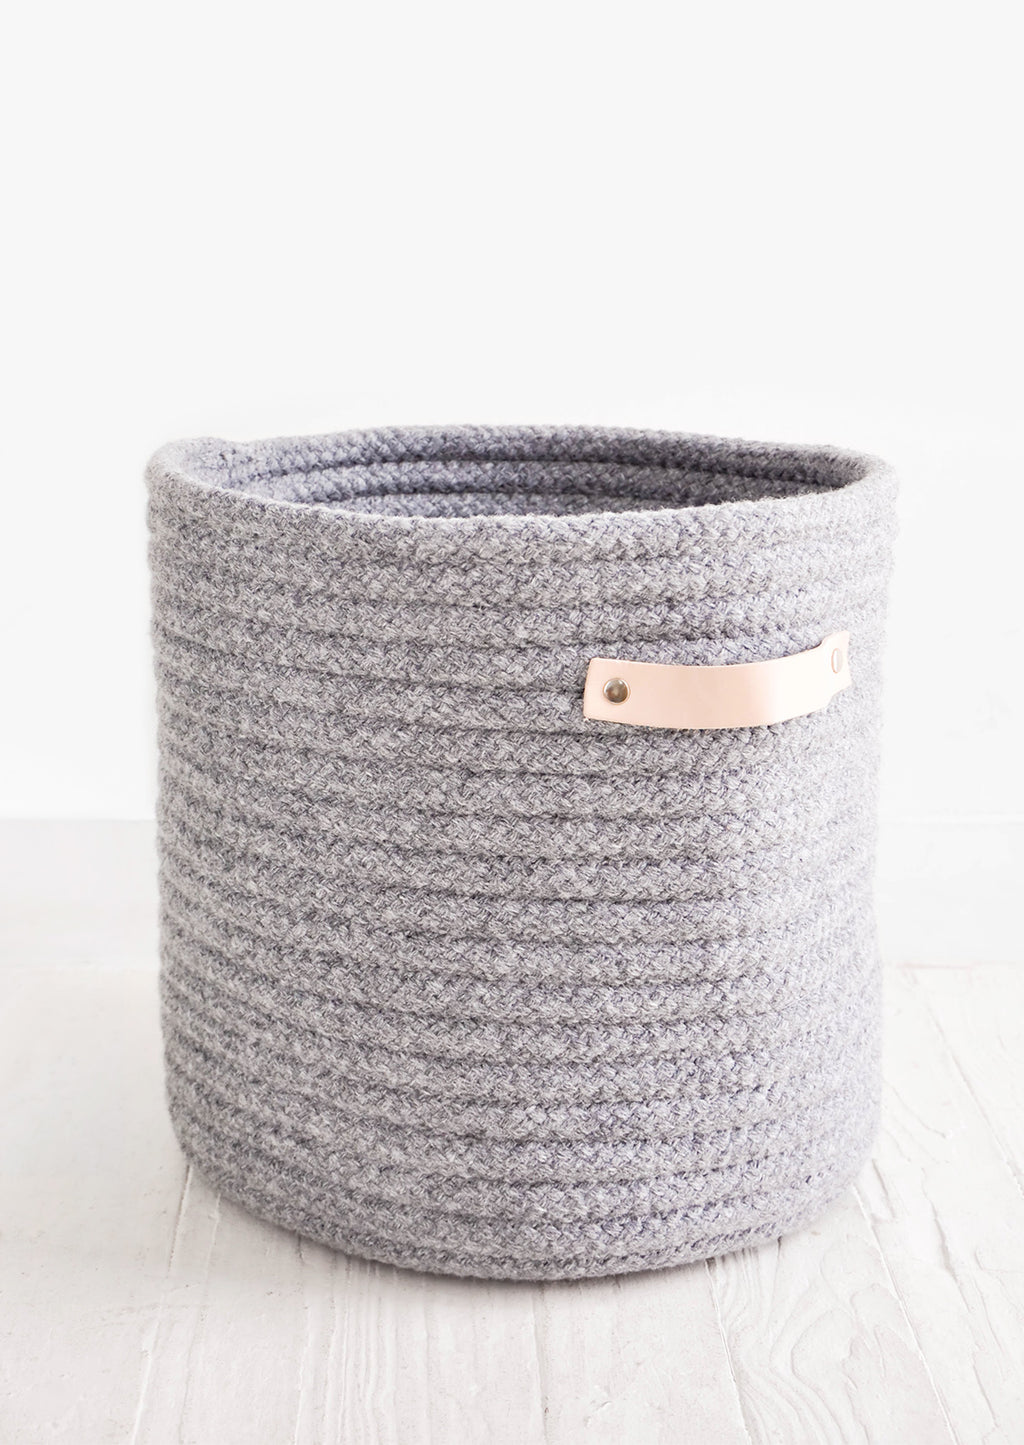 Wooly Storage Bin with Leather in Small / Grey - LEIF